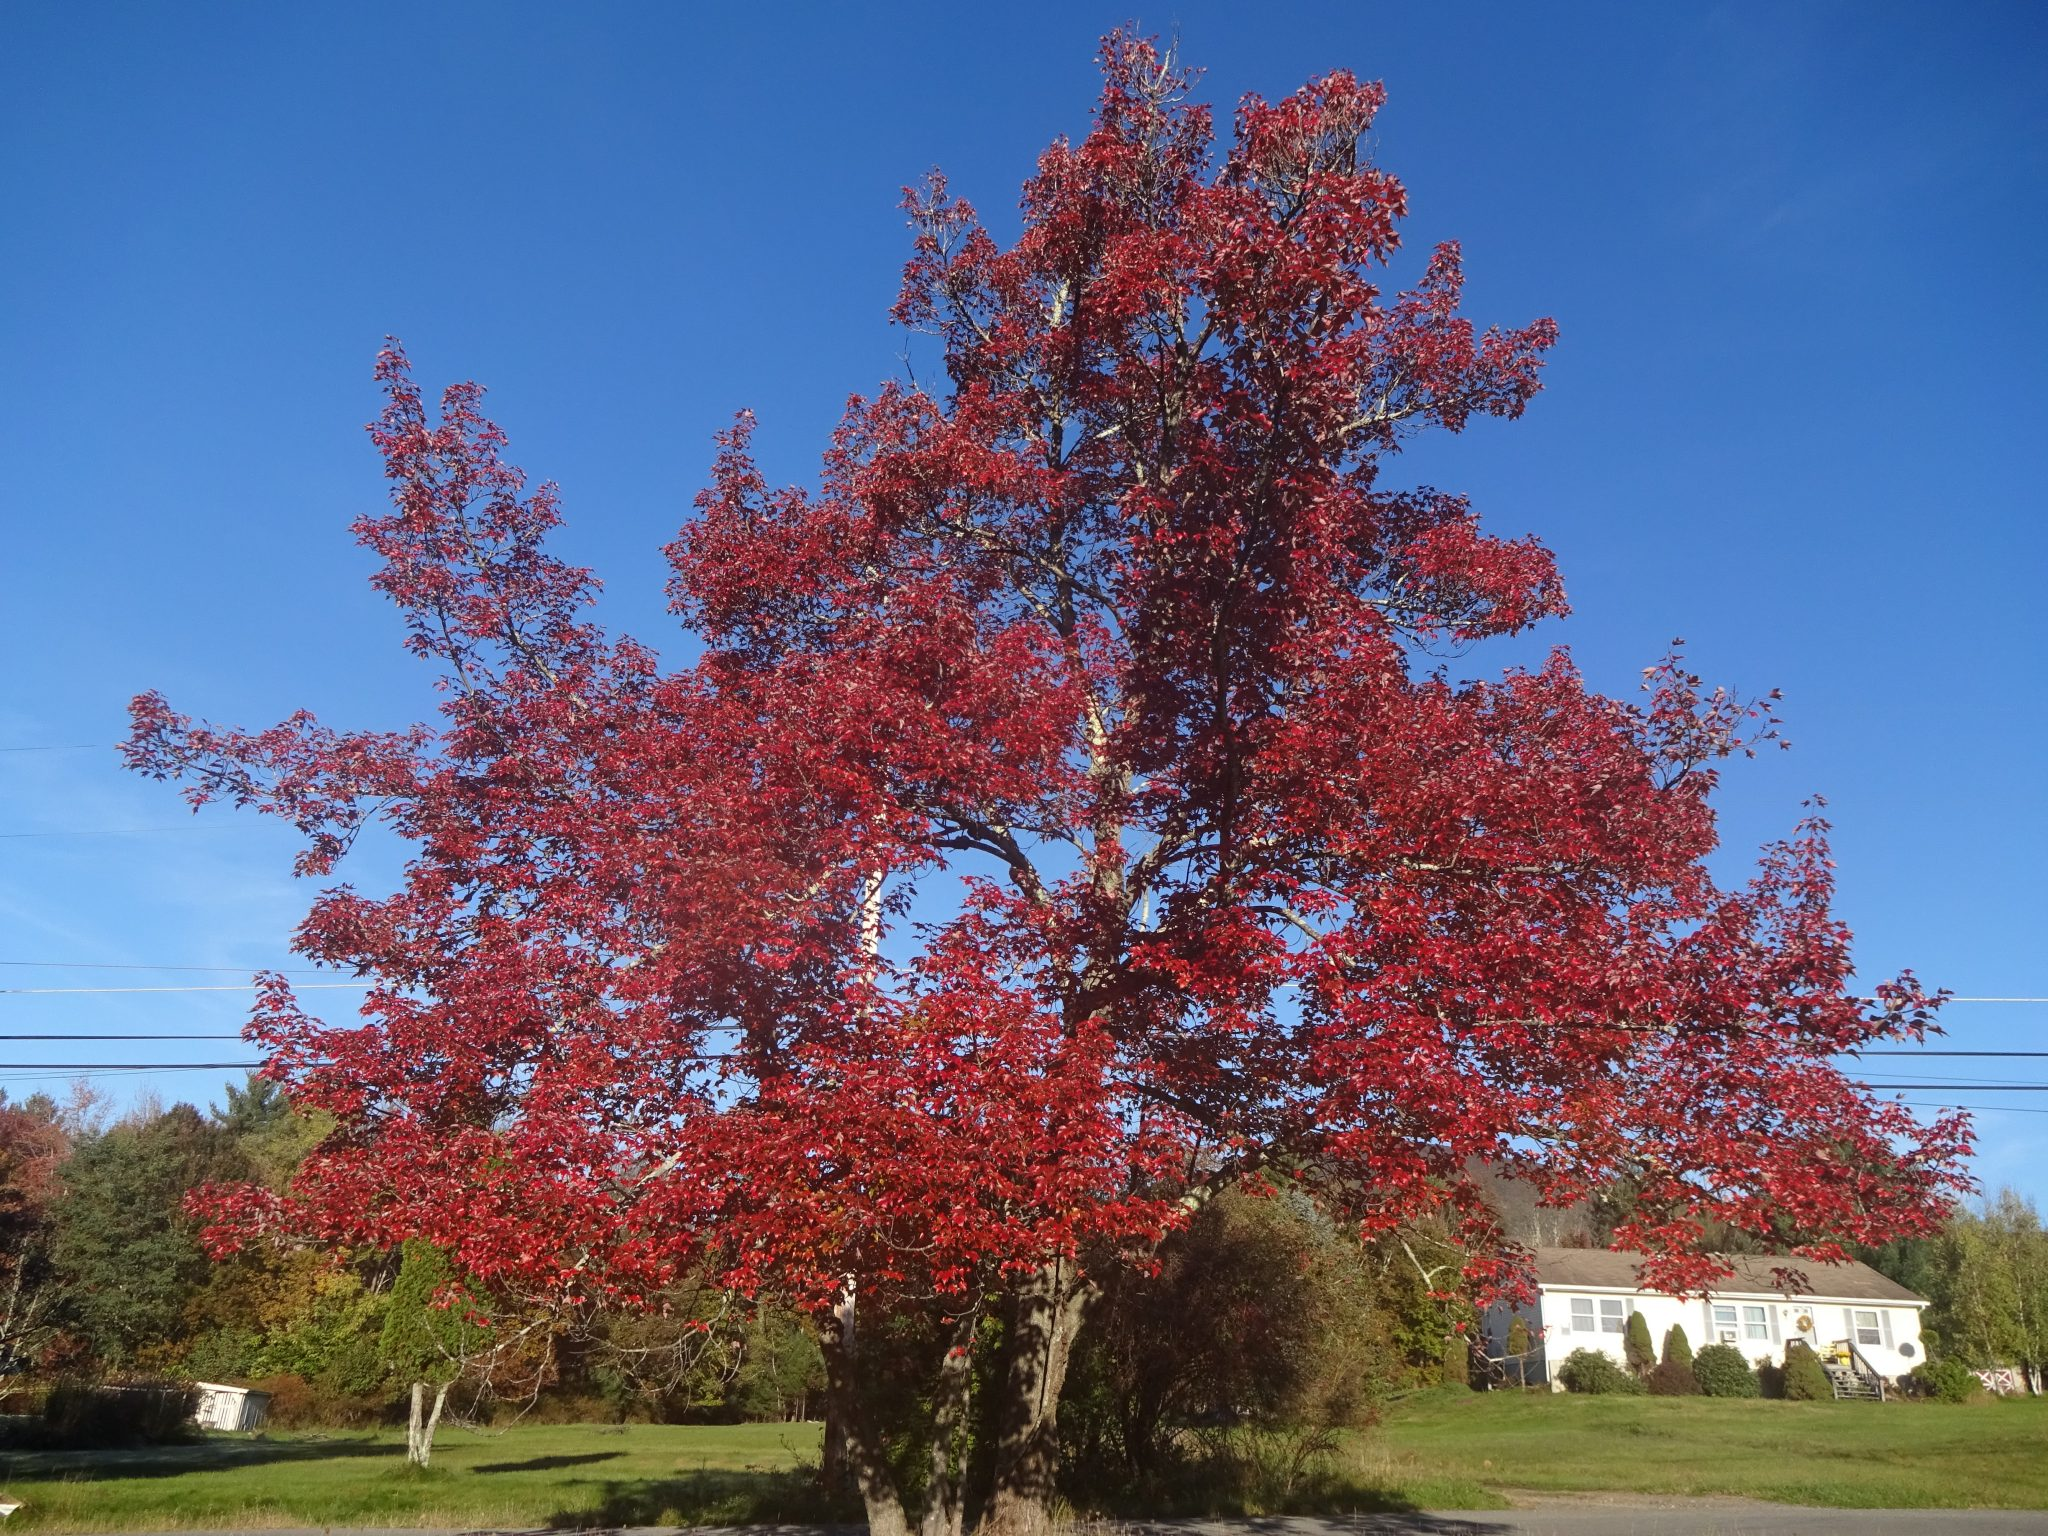 One Exceptional Red Maple